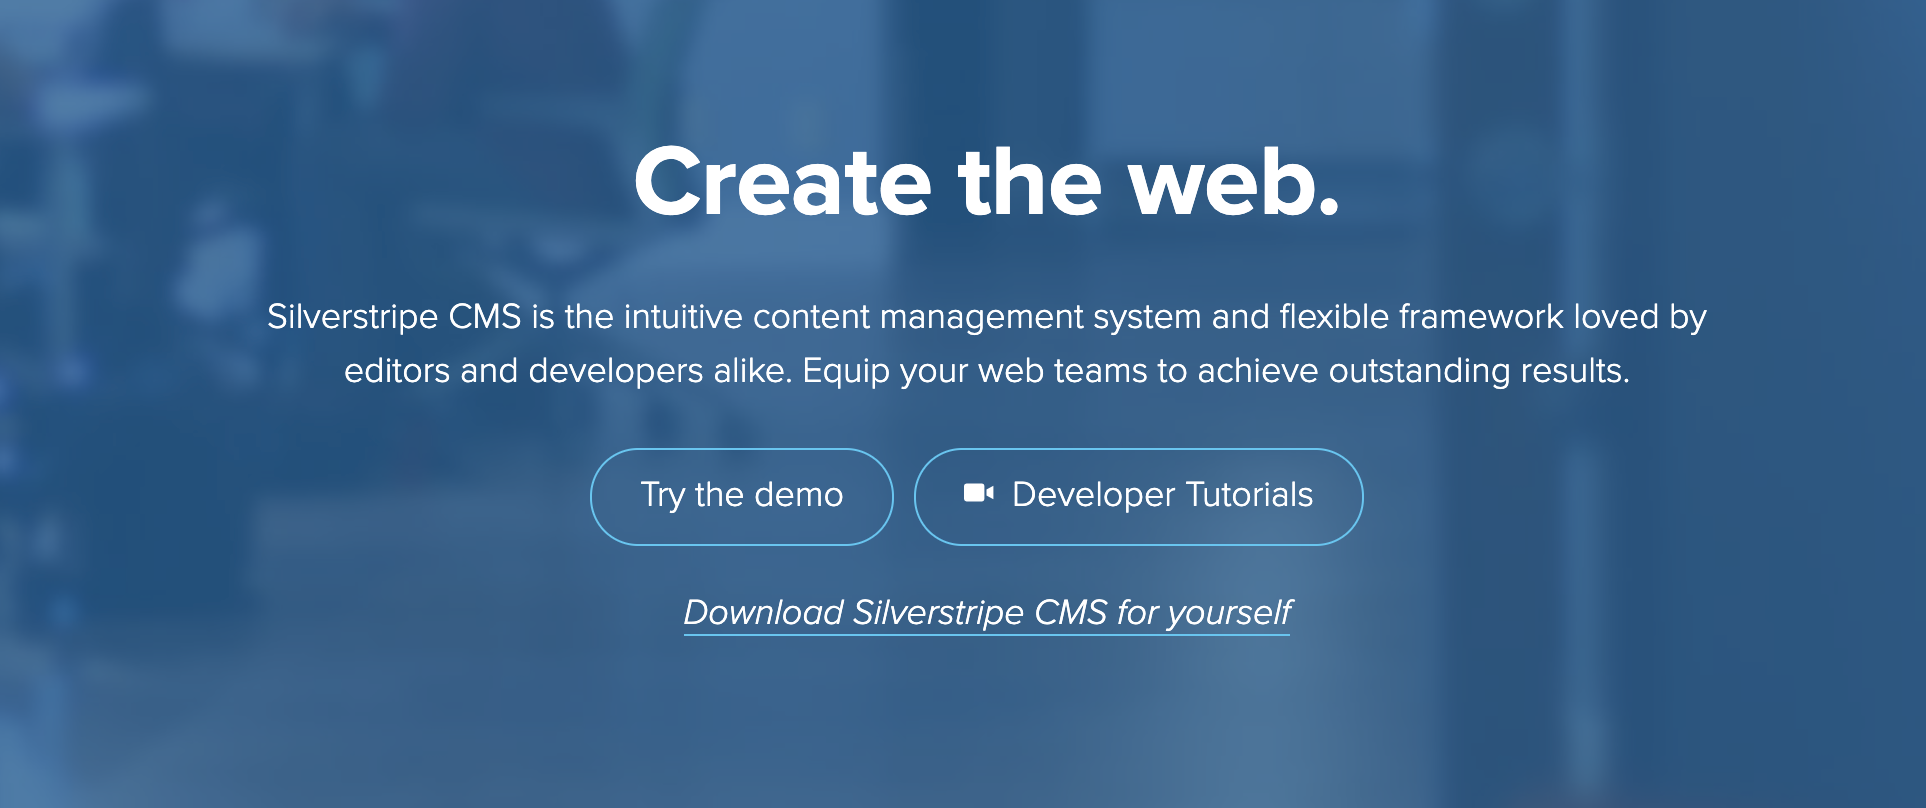 silverstripe home page to create blogs